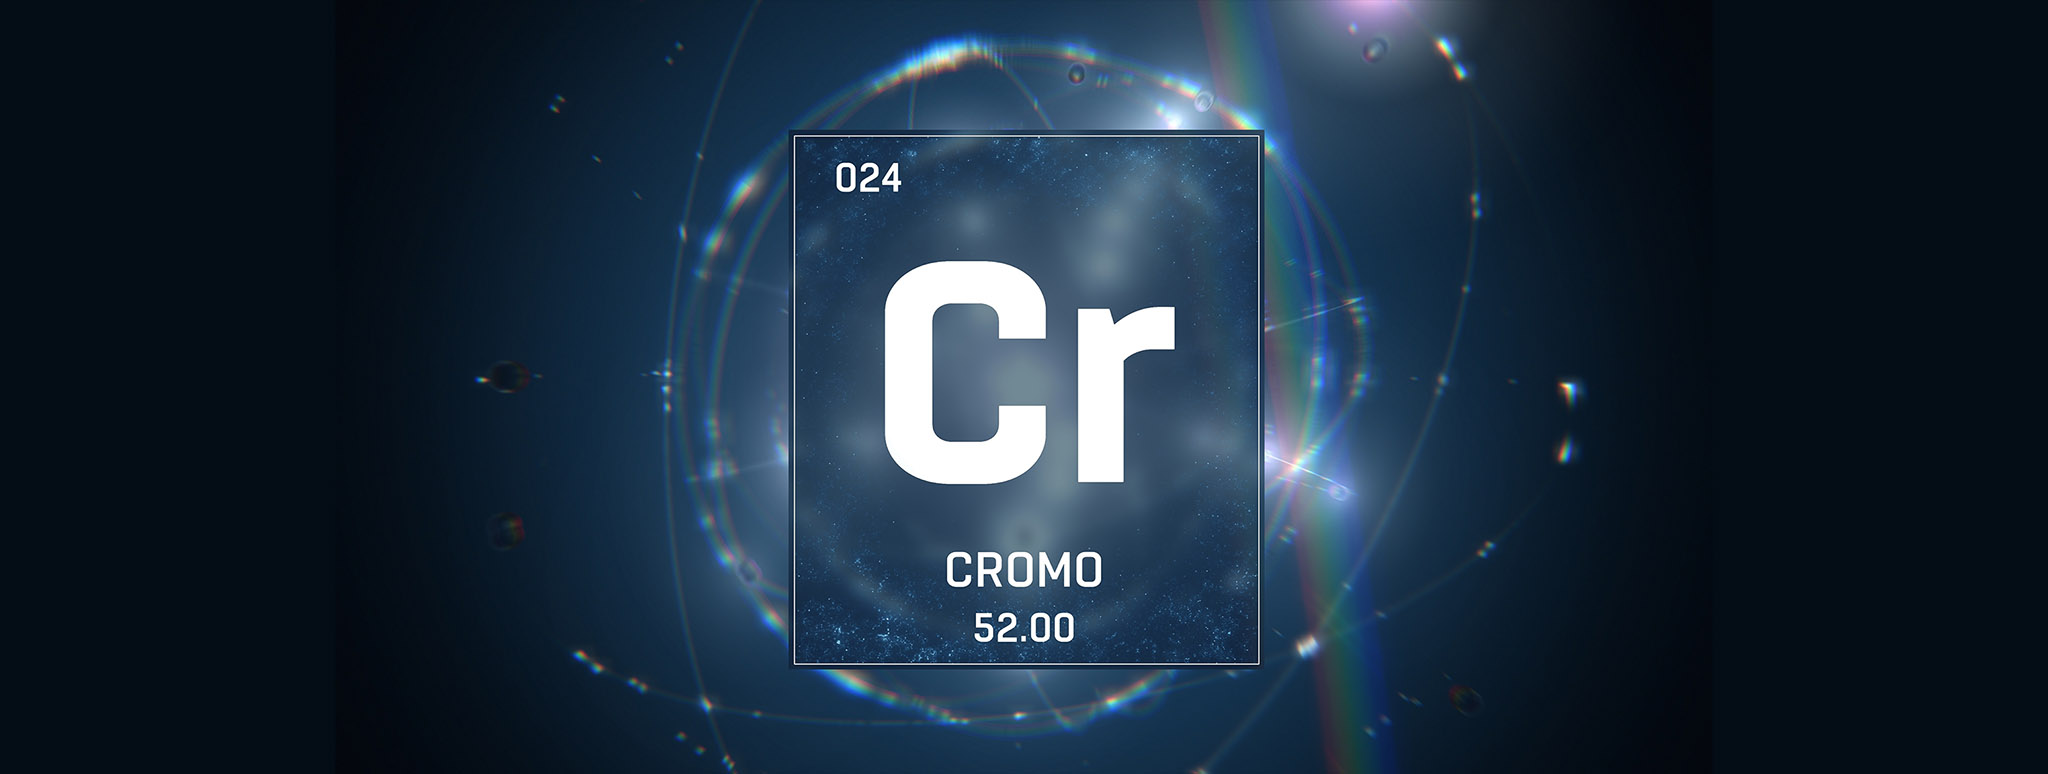 3D illustration of Chromium as Element 24 of the Periodic Table.